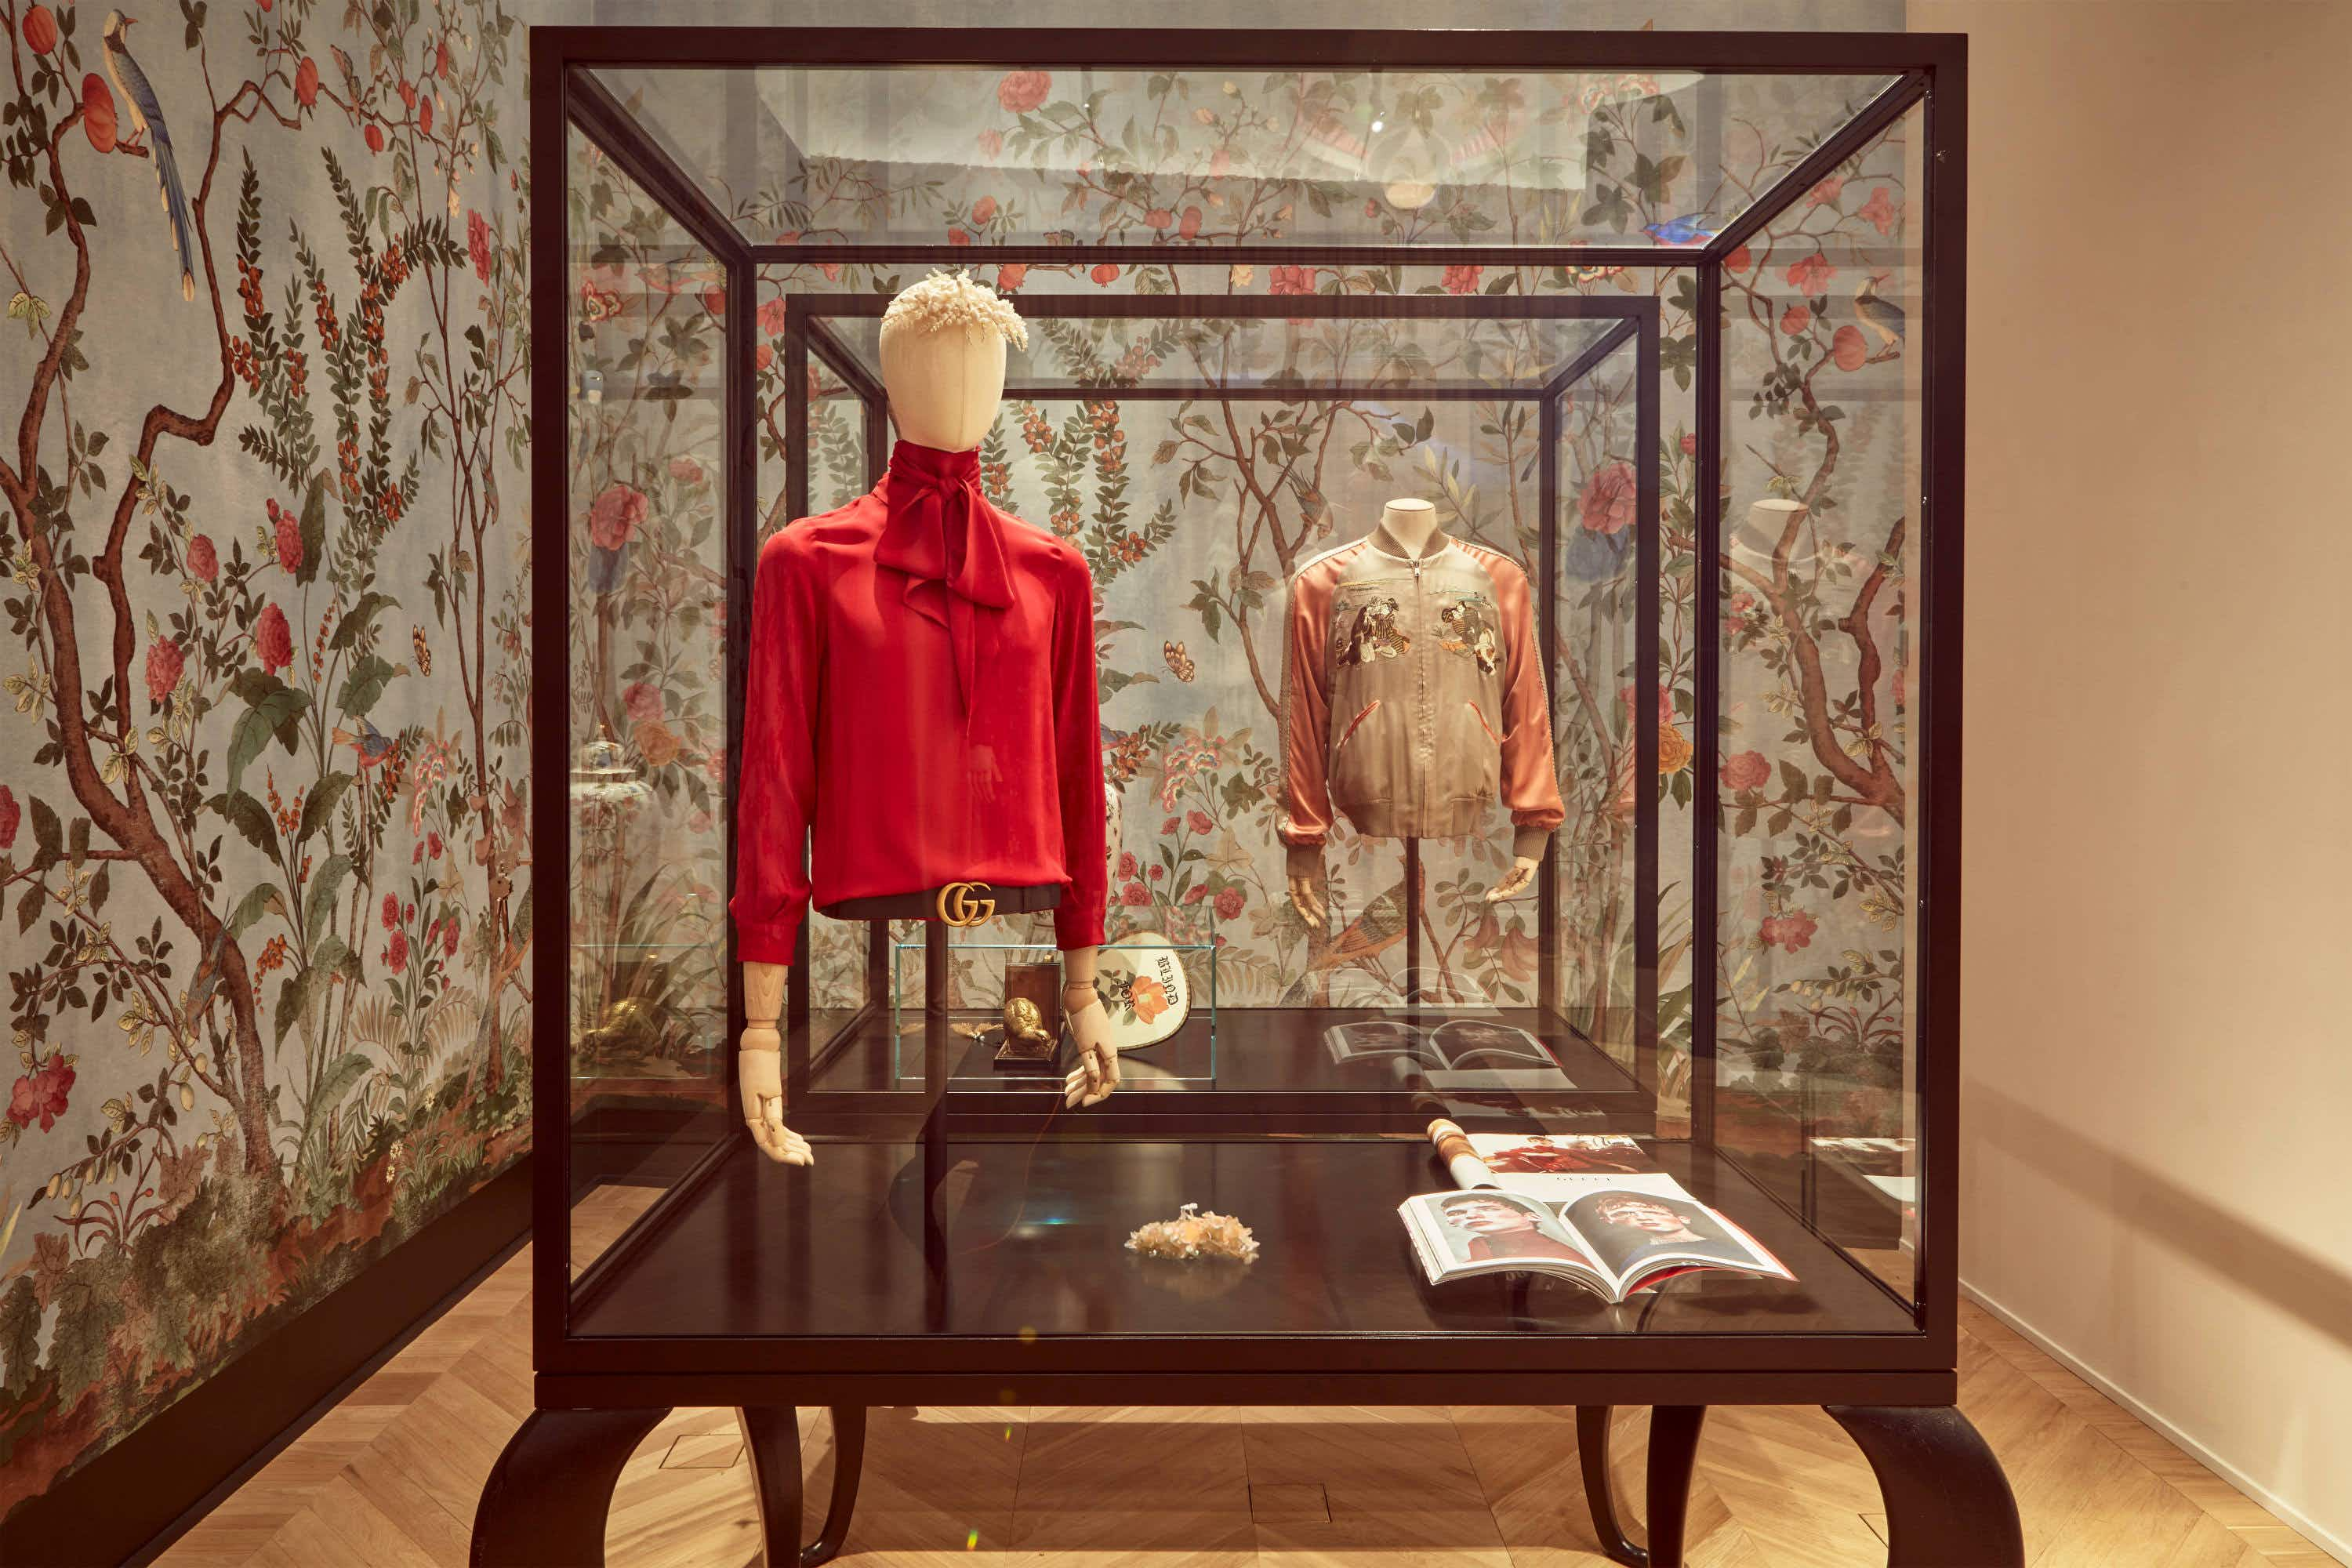 Gucci Garden reopens in Florence to explore fashion history